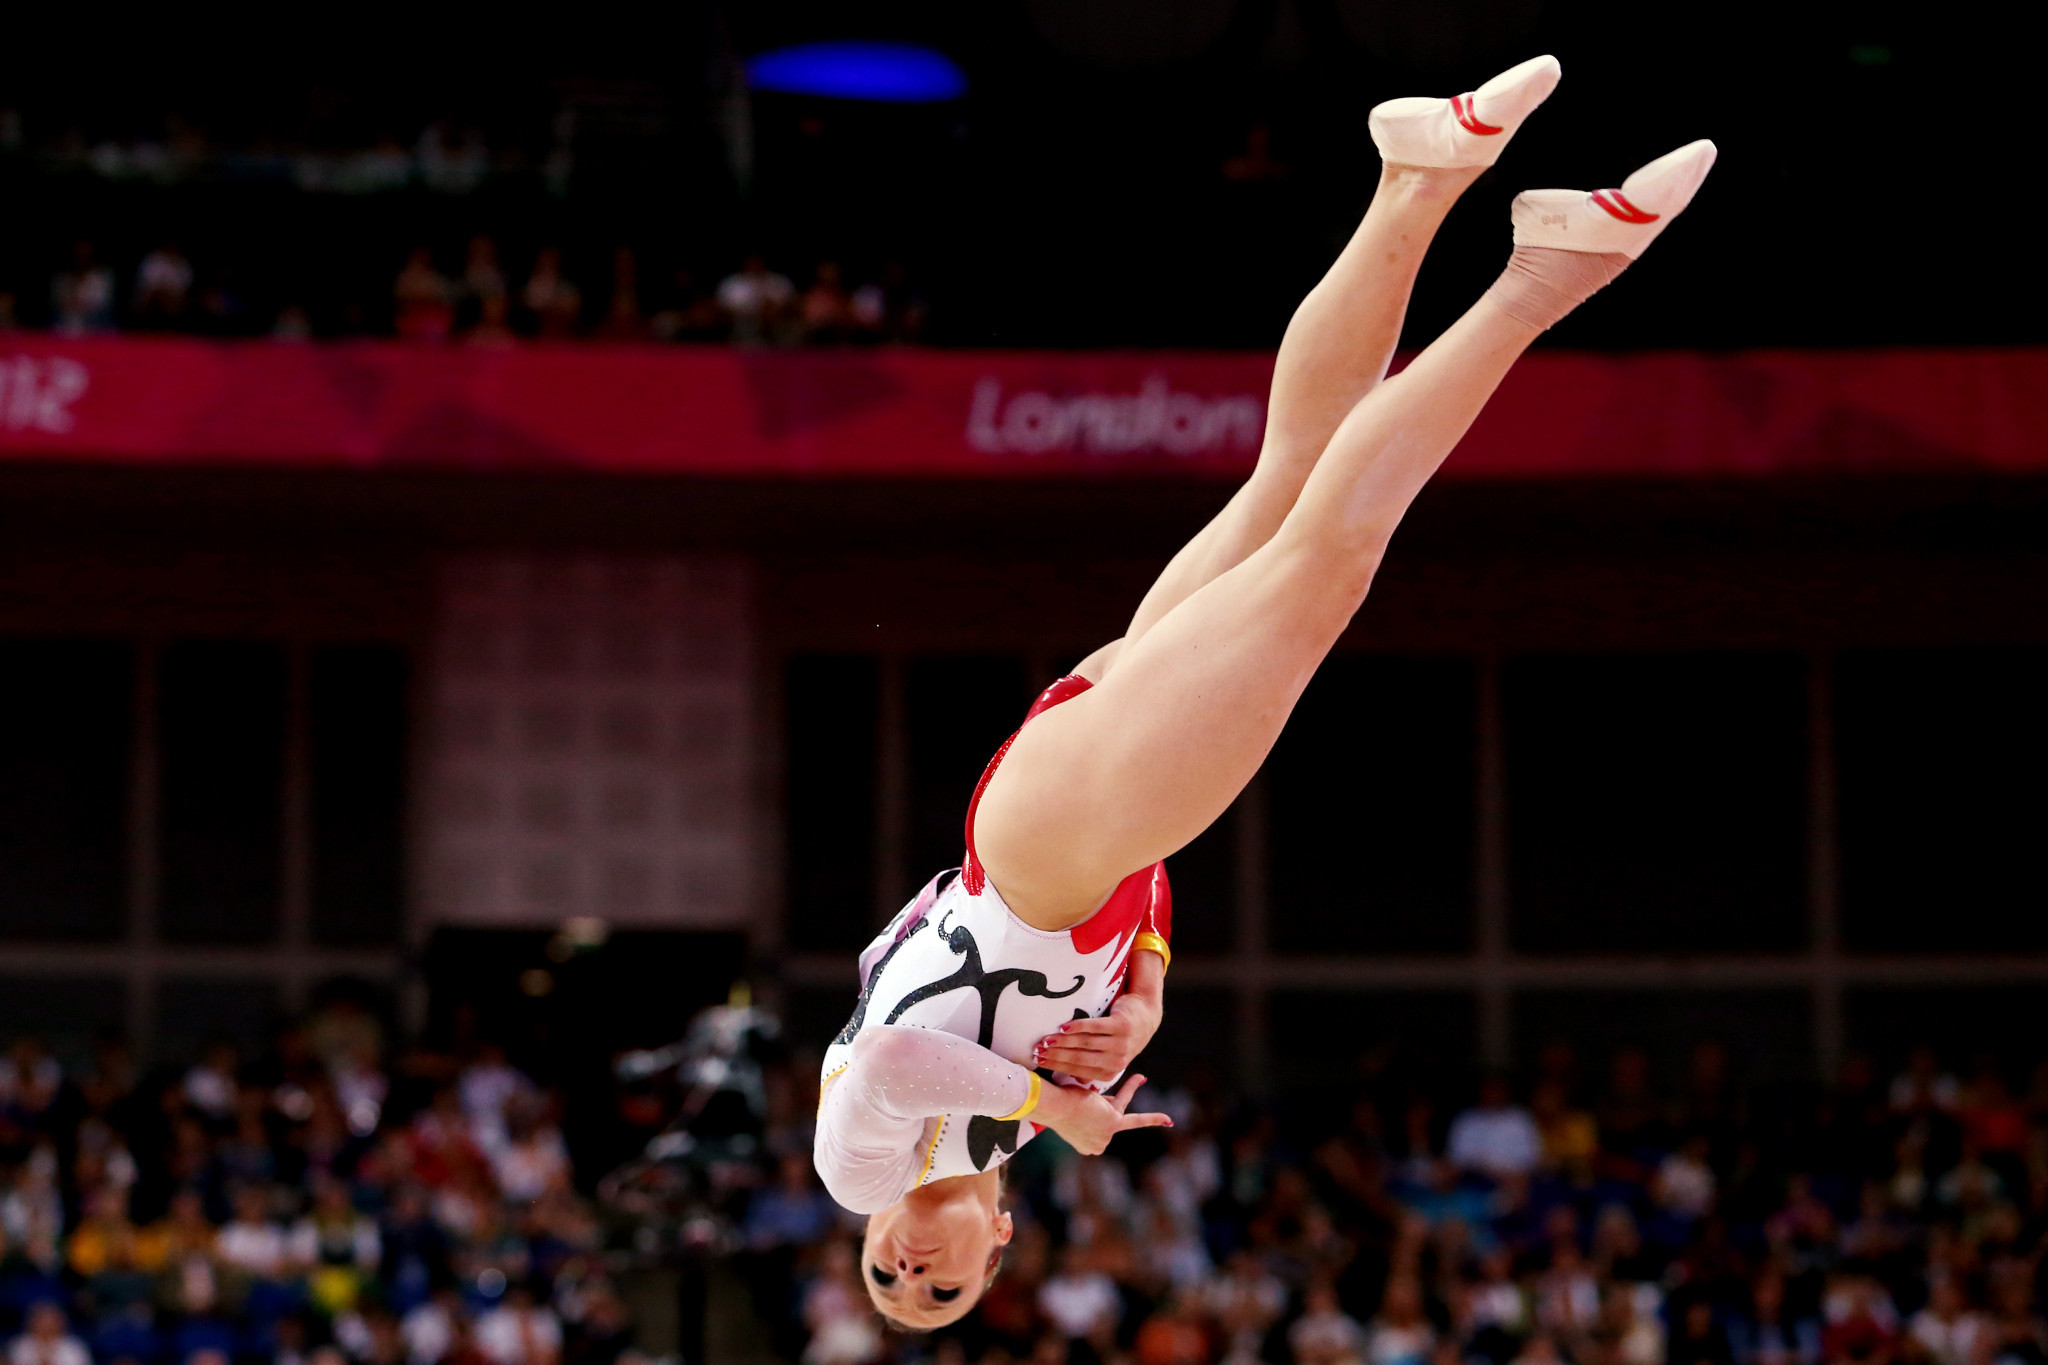 Tokyo 2020 qualification process continues with FIG World Cup in Cottbus